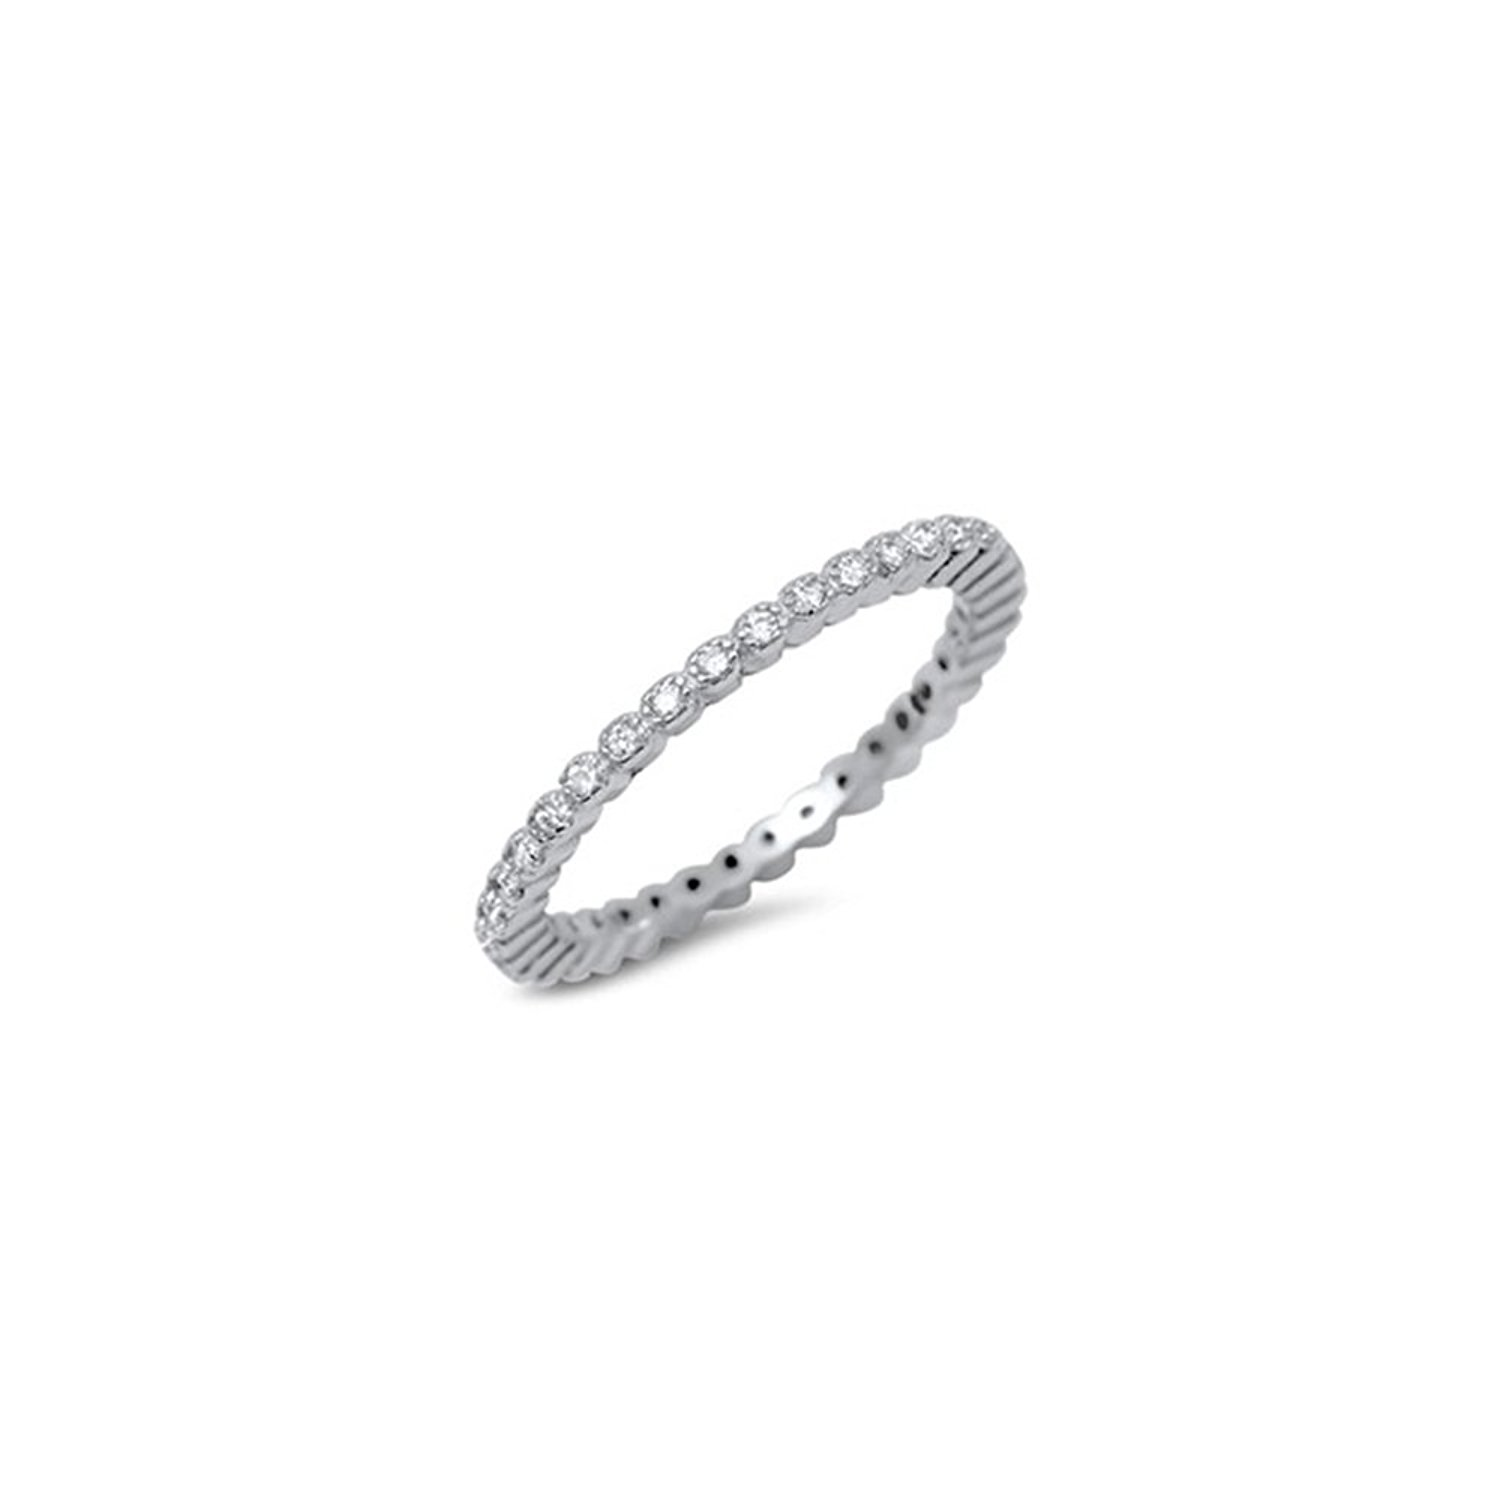 Noureda Sterling Silver Classy Stackable Band Ring Set with Round Cut Clear Czs, Band Width of 2MM